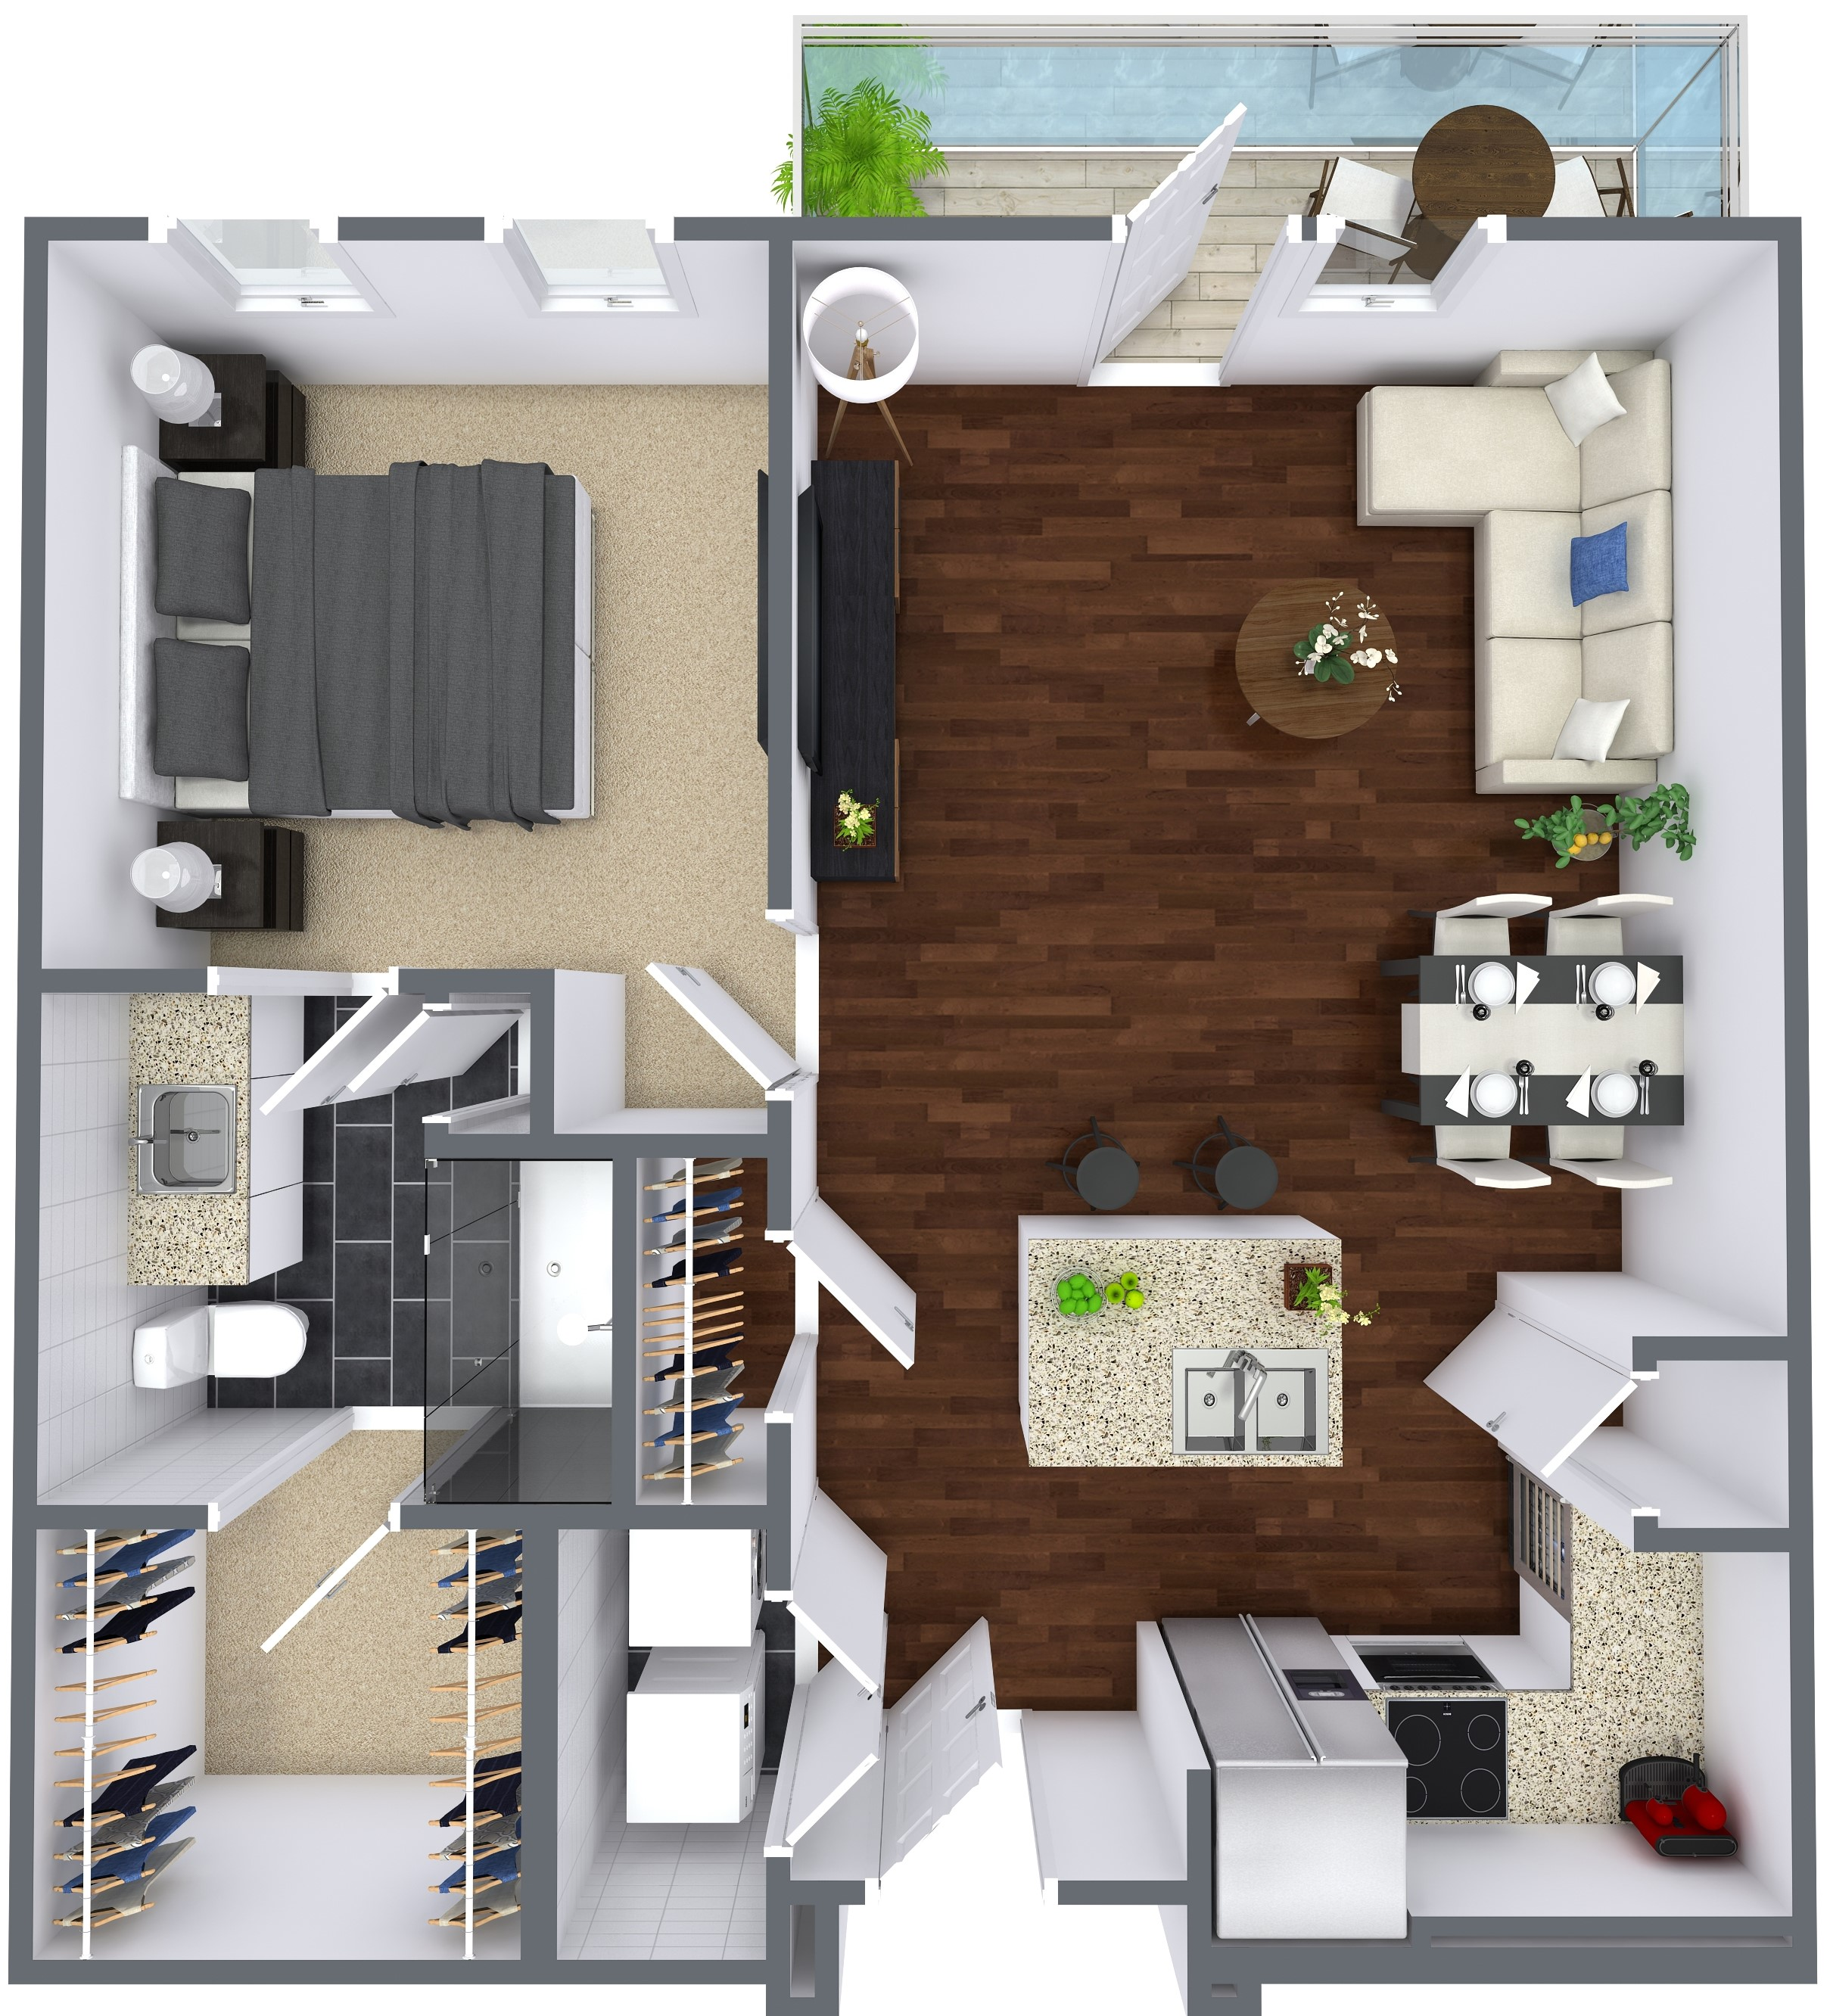 Oxford at Lake View - Floorplan - A1